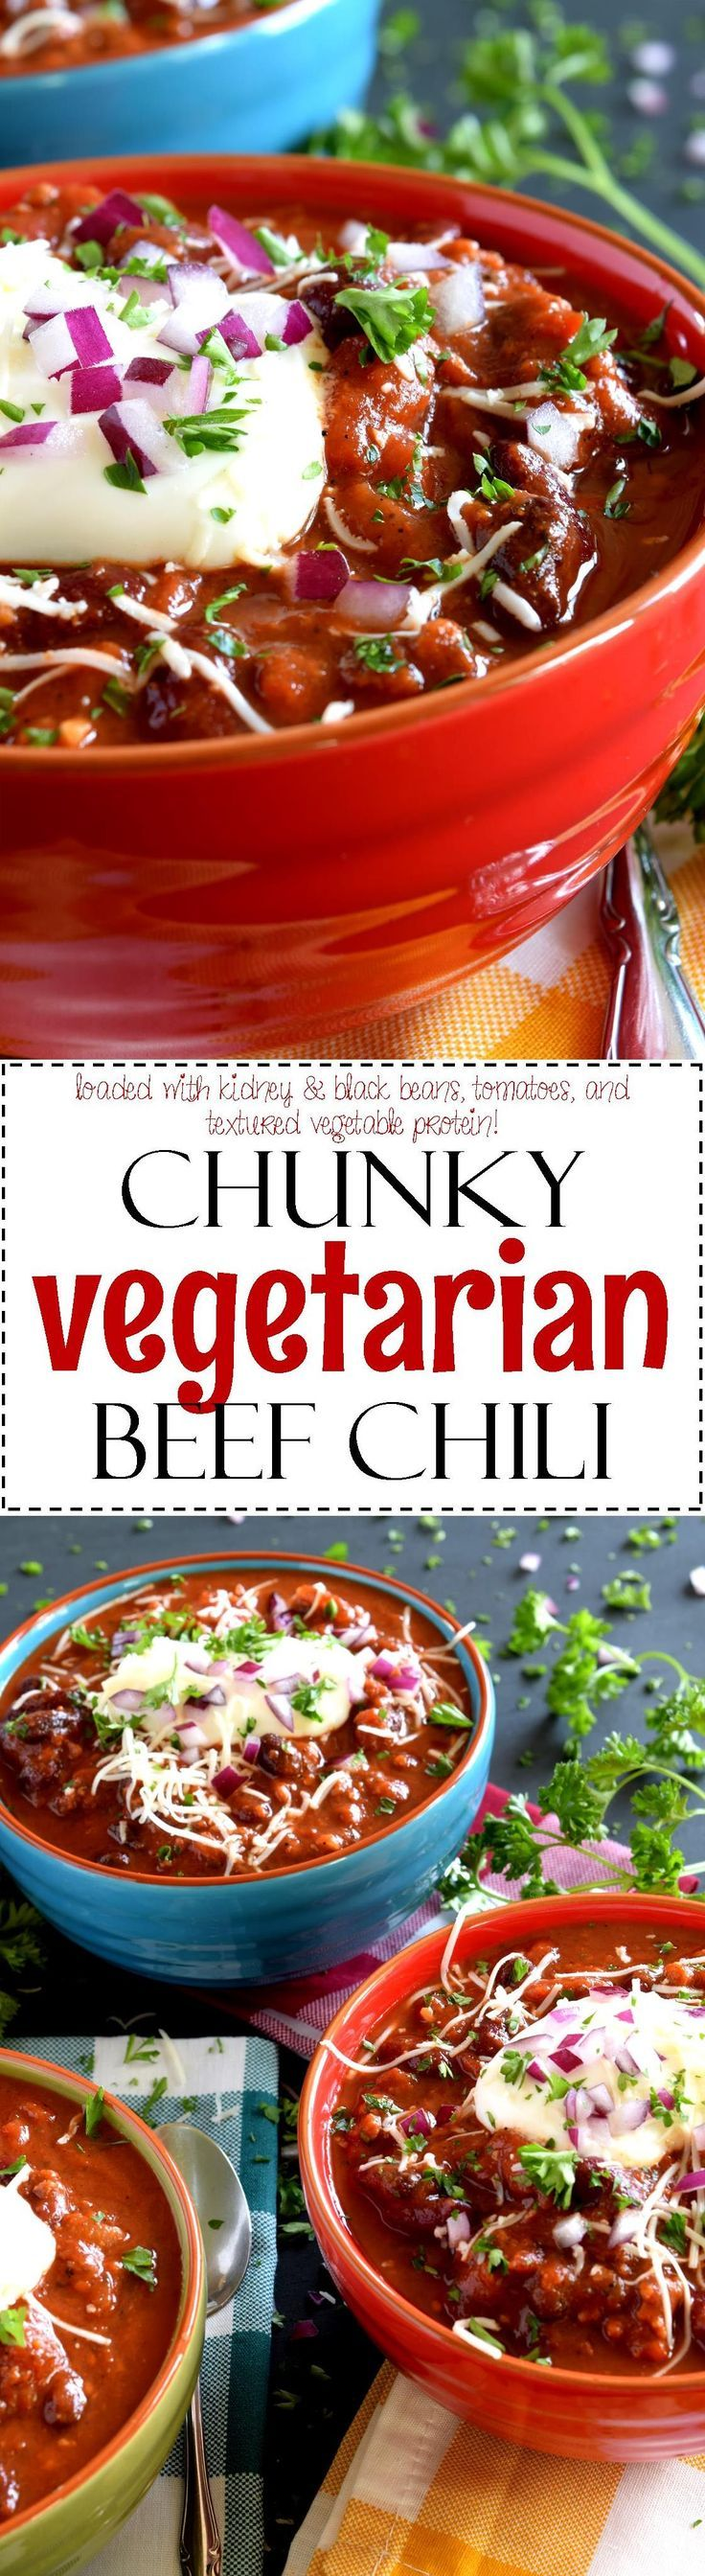 Chunky Vegetarian Beef Chili - Chunky Vegetarian Beef Chili is the ultimate in vegetarian chili options.  Loaded with kidney and black beans, big pieces of tomato, and textured vegetable protein, this dish will fool even the most die-hard ground beef lover!